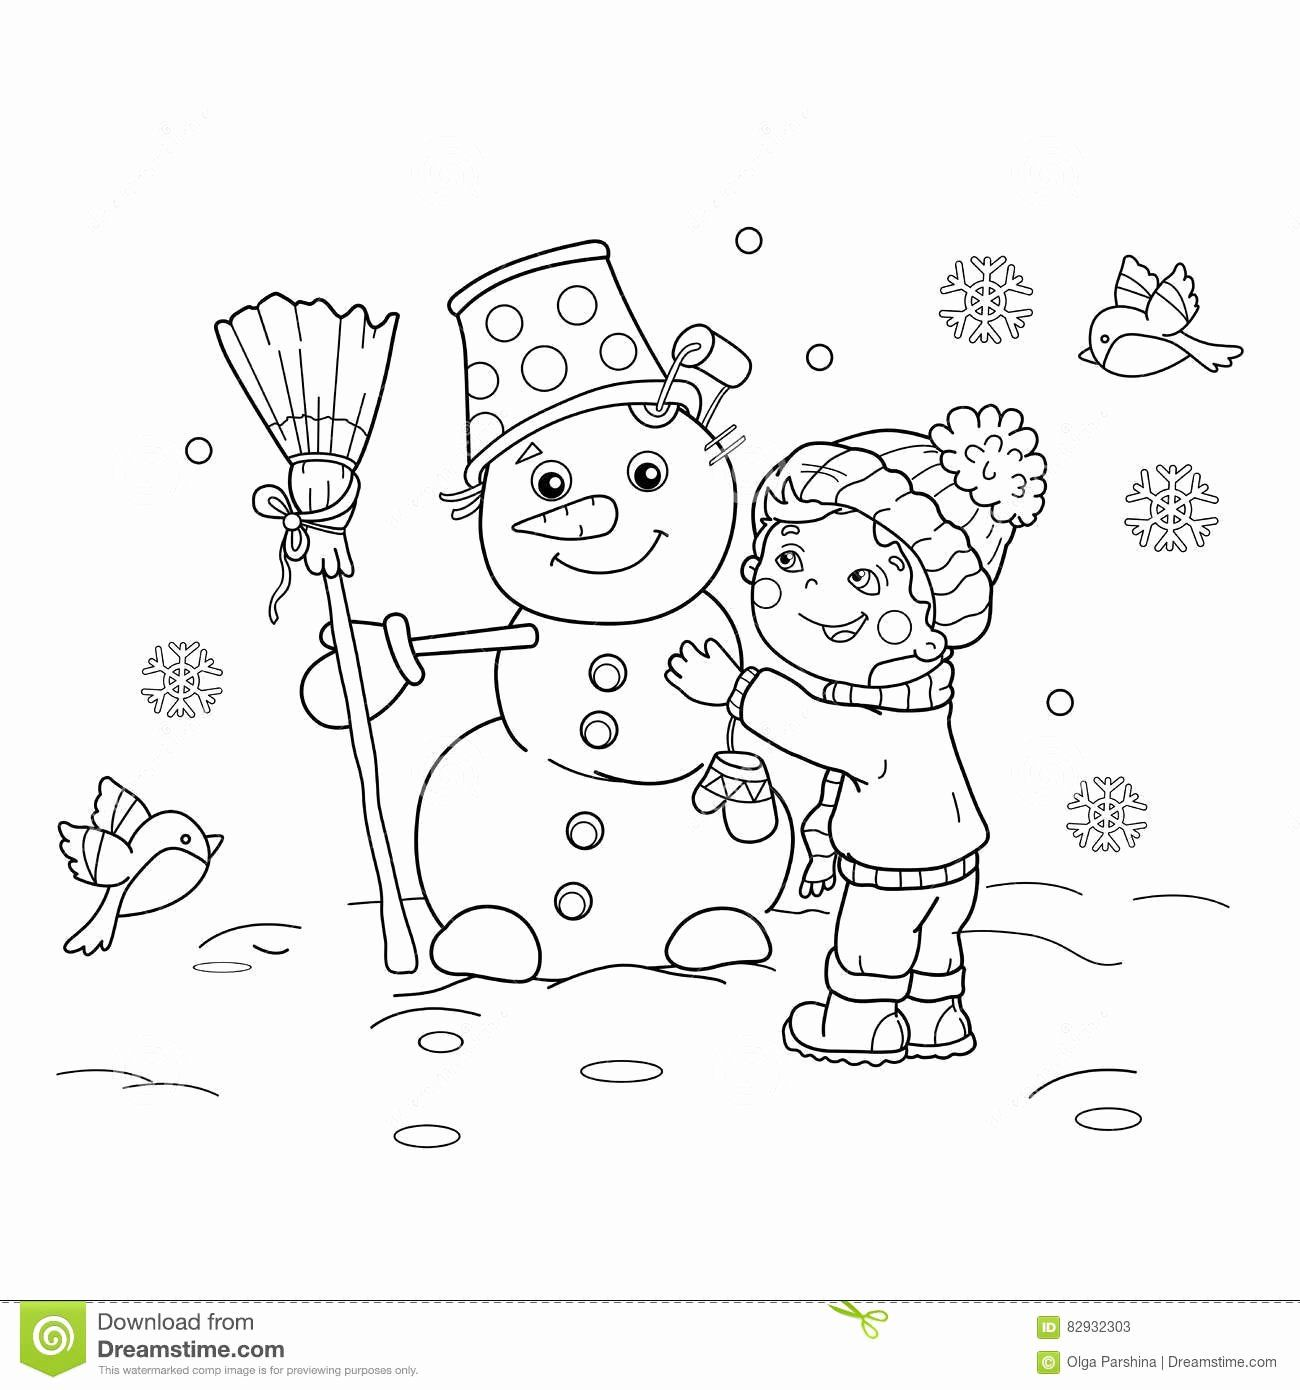 Winter Coloring Sheets For Kids Luxury Coloring Page Outline Cartoon Boy With Snowman Winter Coloring Sheets For Kids Coloring Pages Coloring Sheets